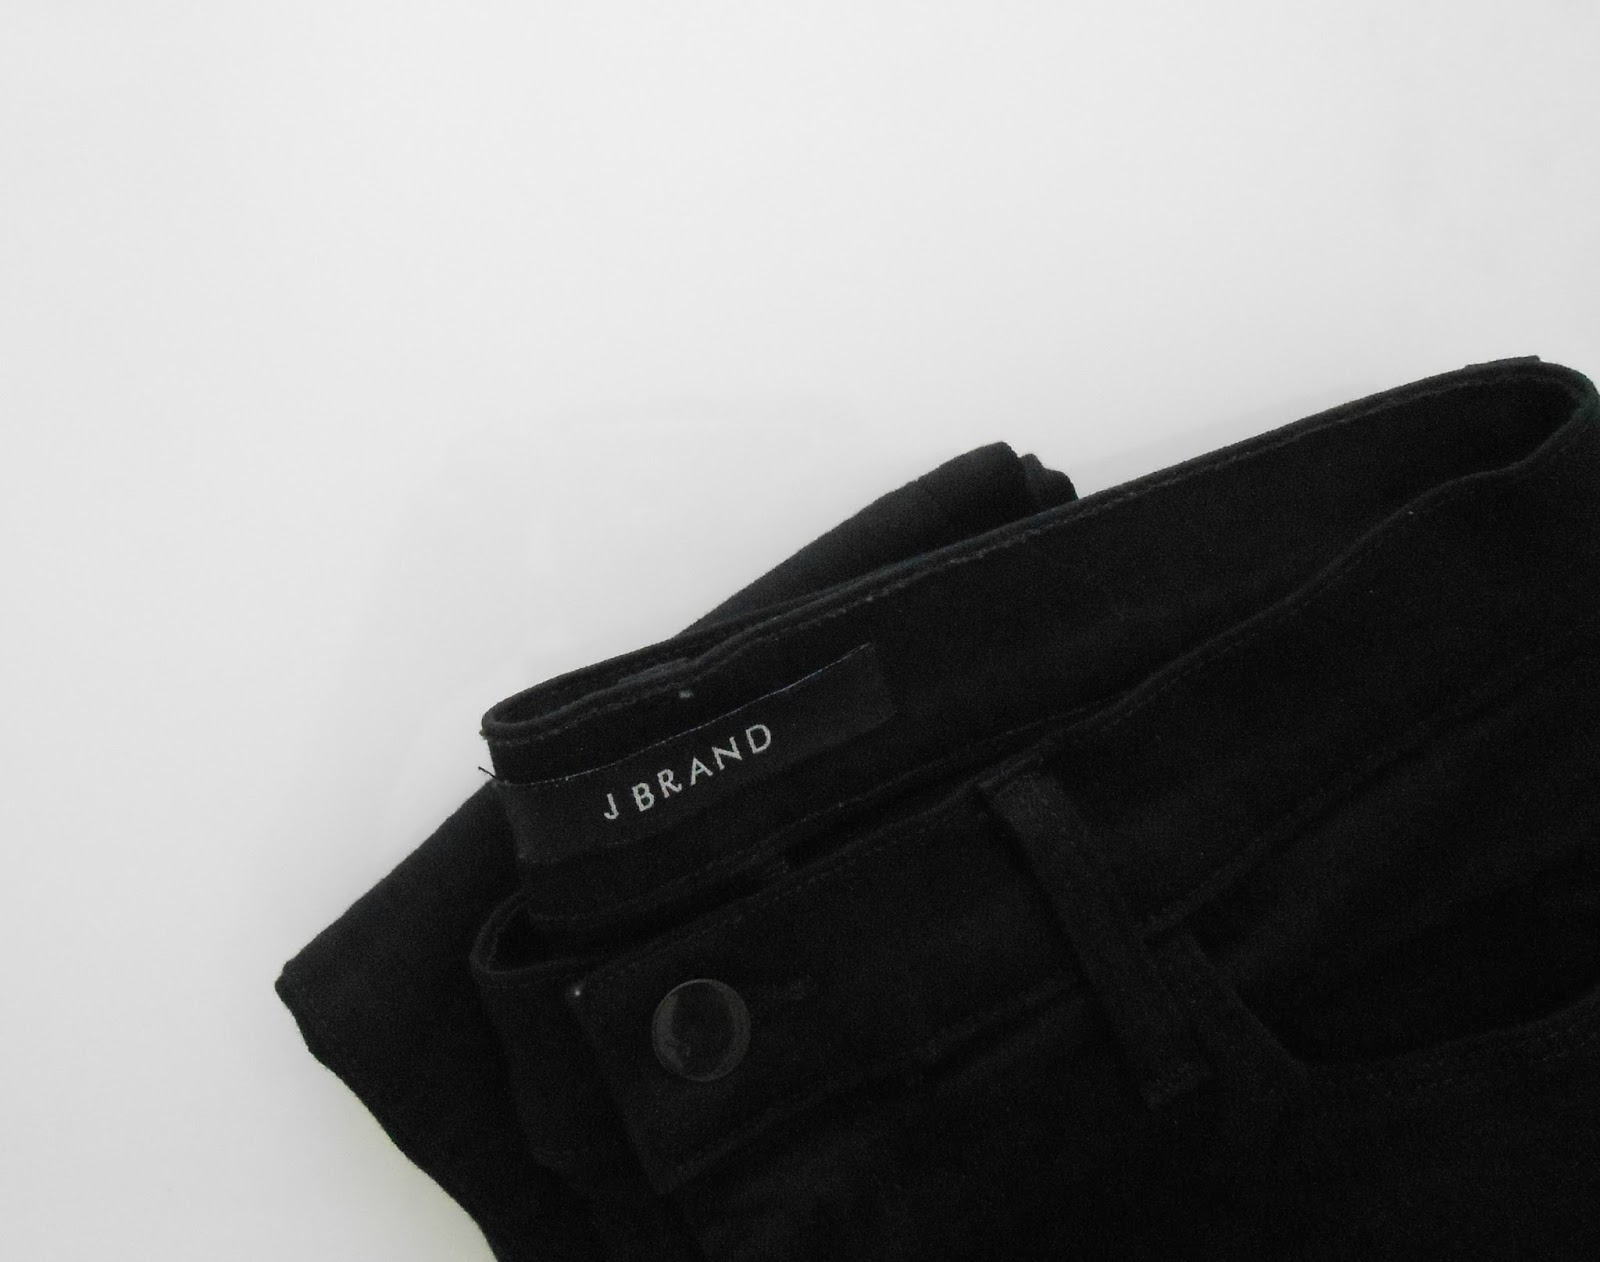 J Brand Jeans Outfit